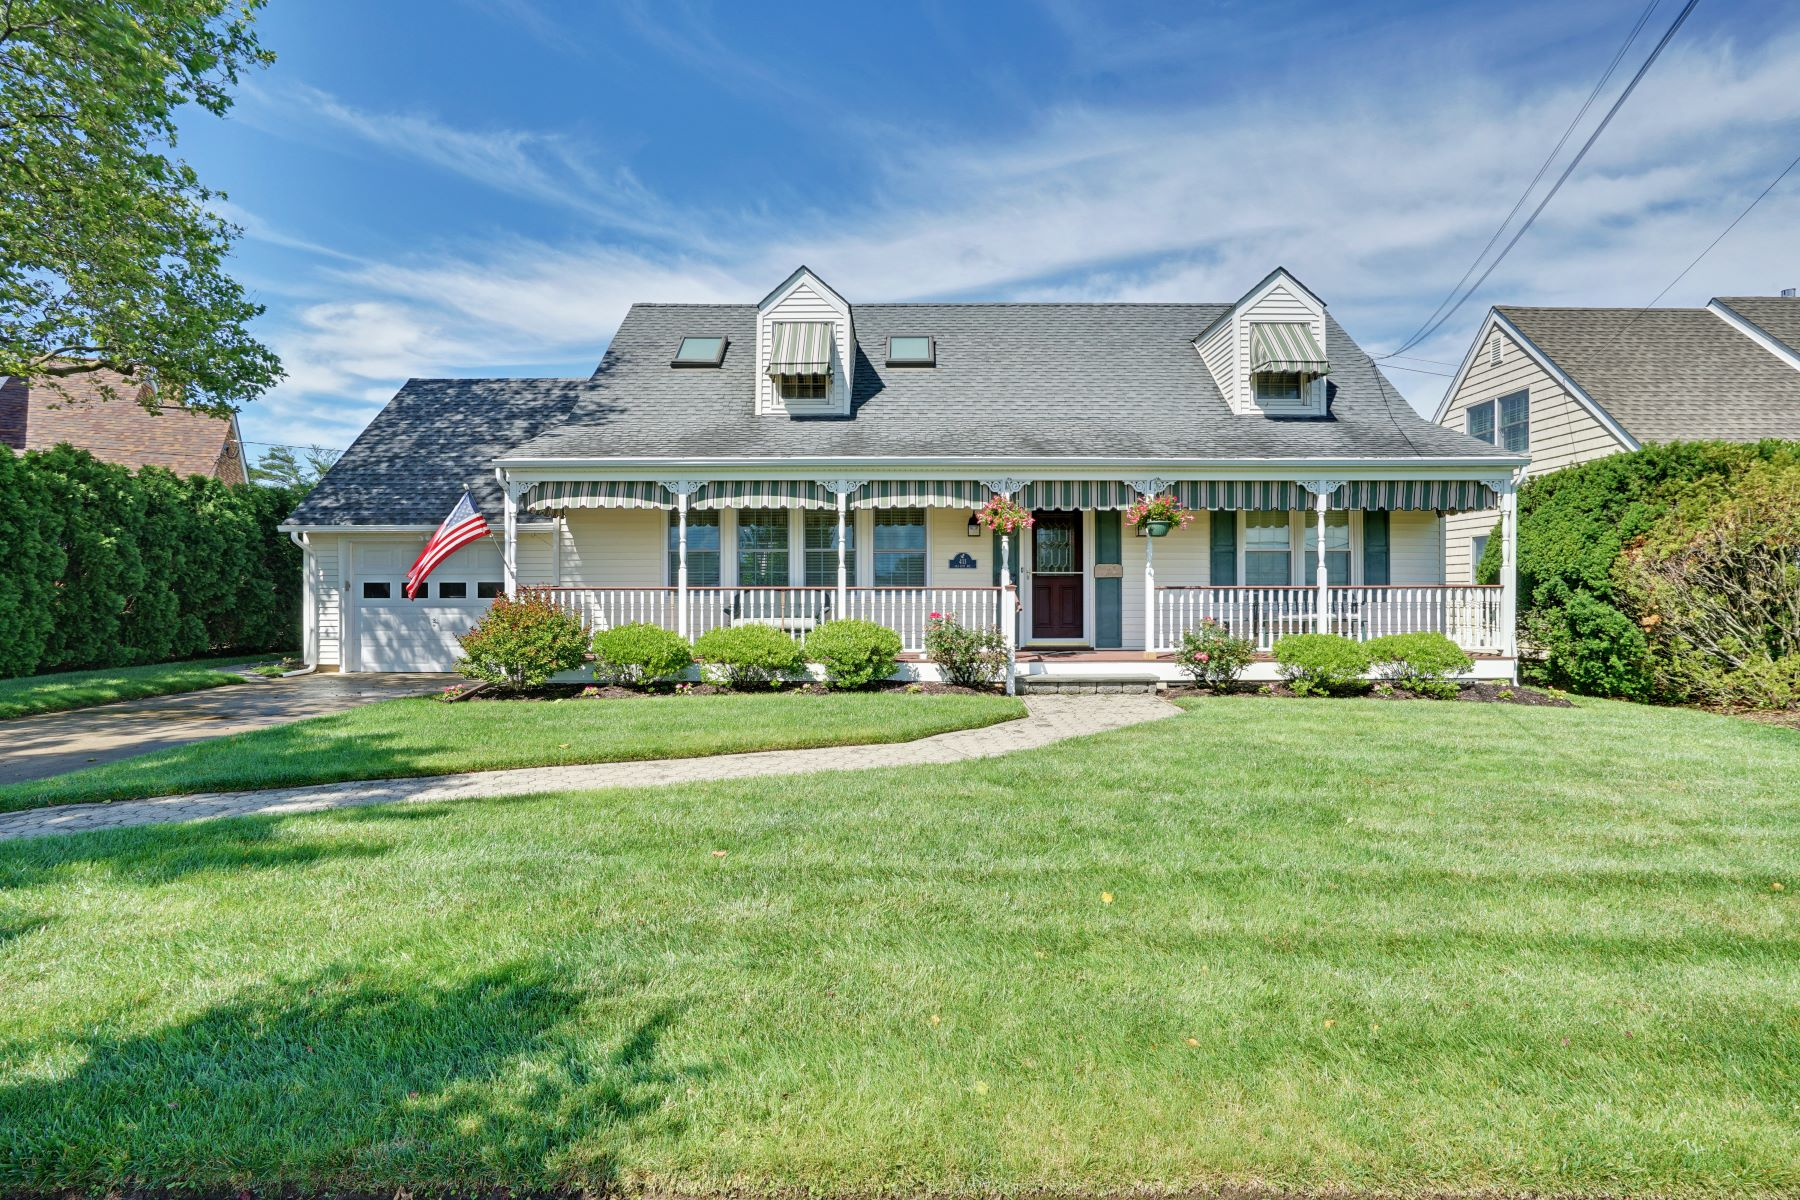 Single Family Homes for Rent at Recently Renovated 411 Sea Girt Avenue, Sea Girt, New Jersey 08750 United States